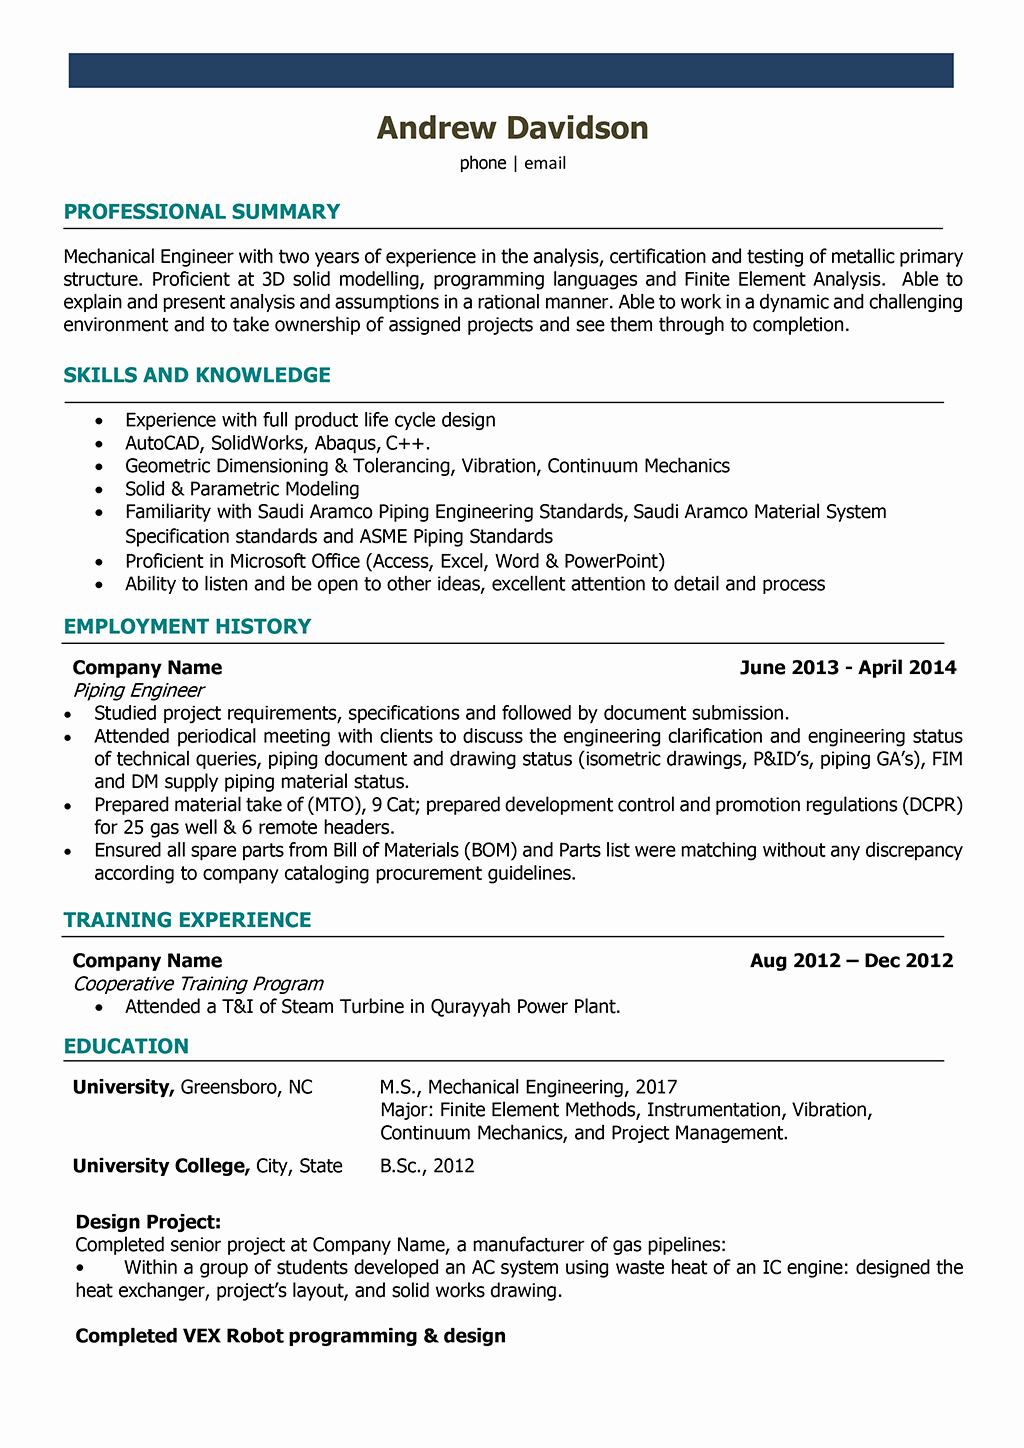 Mechanical Engineer Resume Sample Fresh Mechanical Engineer Resume Samples and Writing Guide